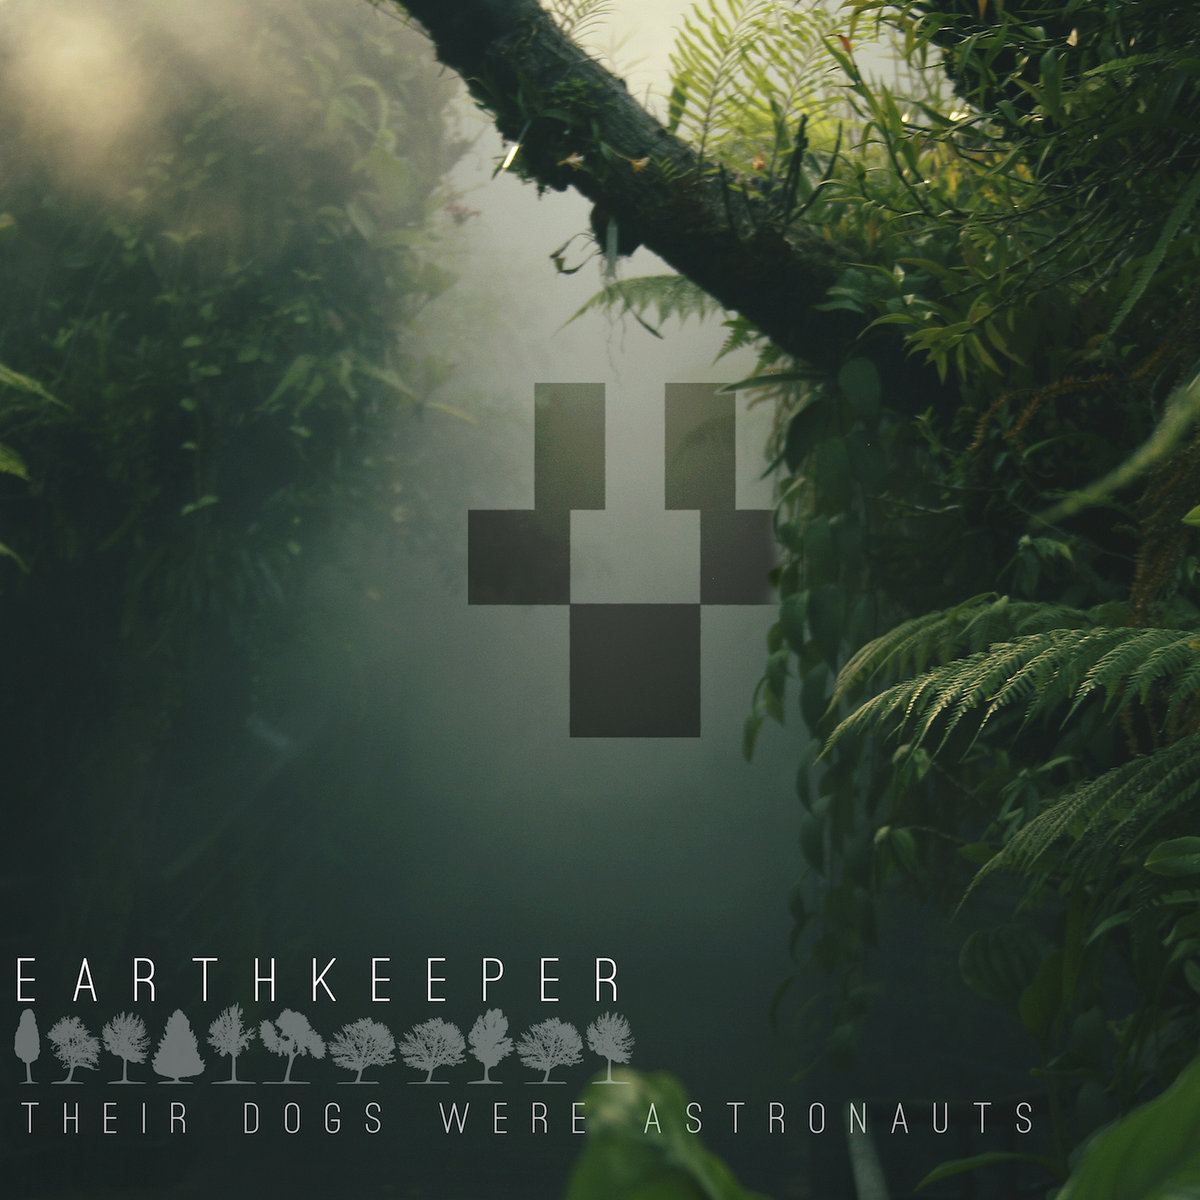 Their Dogs Were Astronauts - In Vain @ 'Earthkeeper' album (instrumental metal, metal)